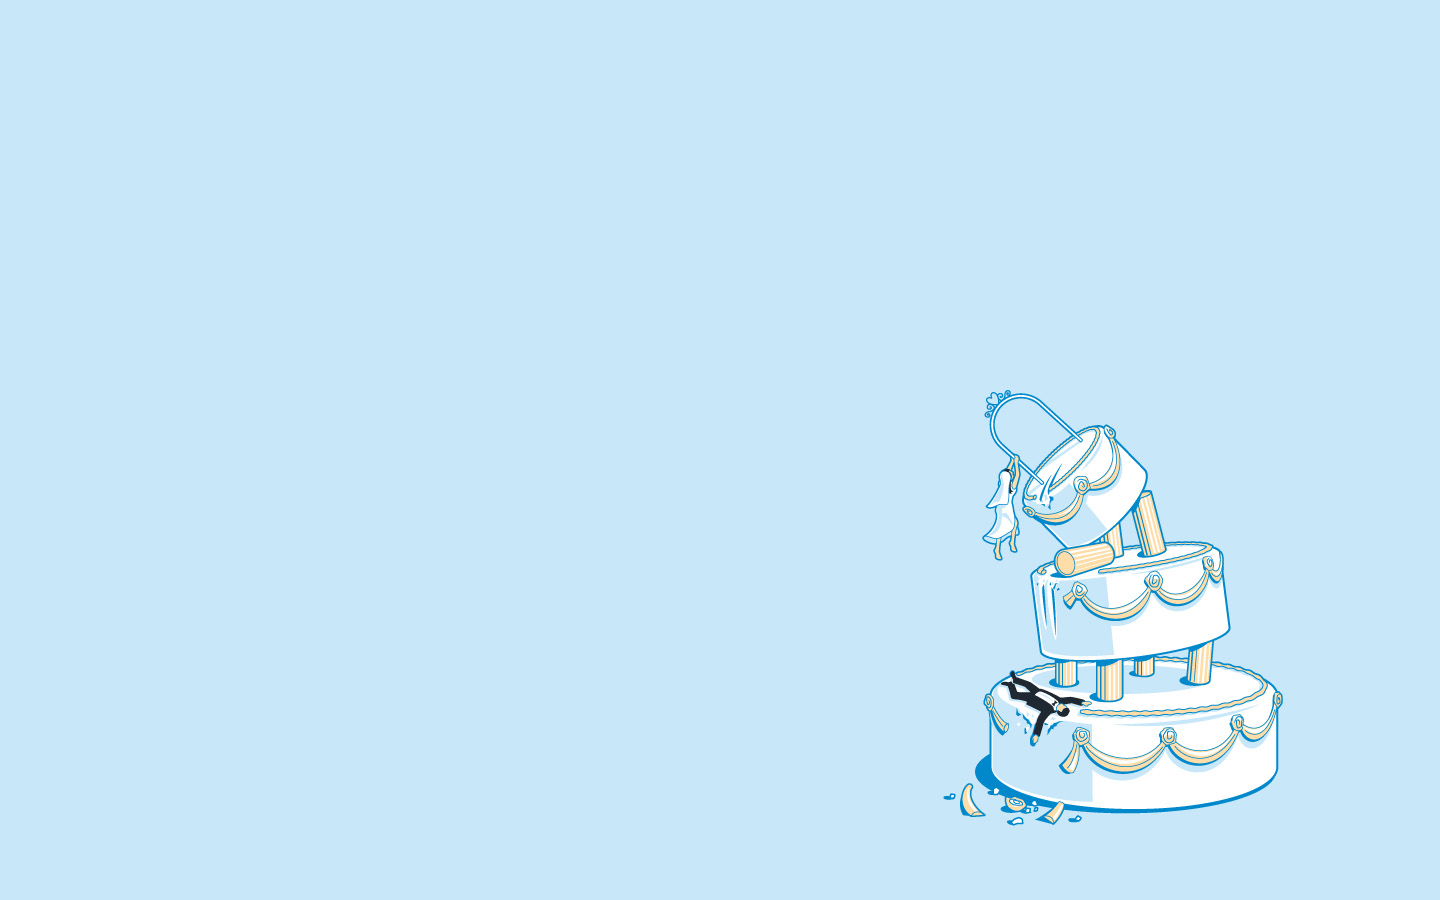 cake for wedding ppt backgrounds 1024x768 resolutions, cake for, Powerpoint templates